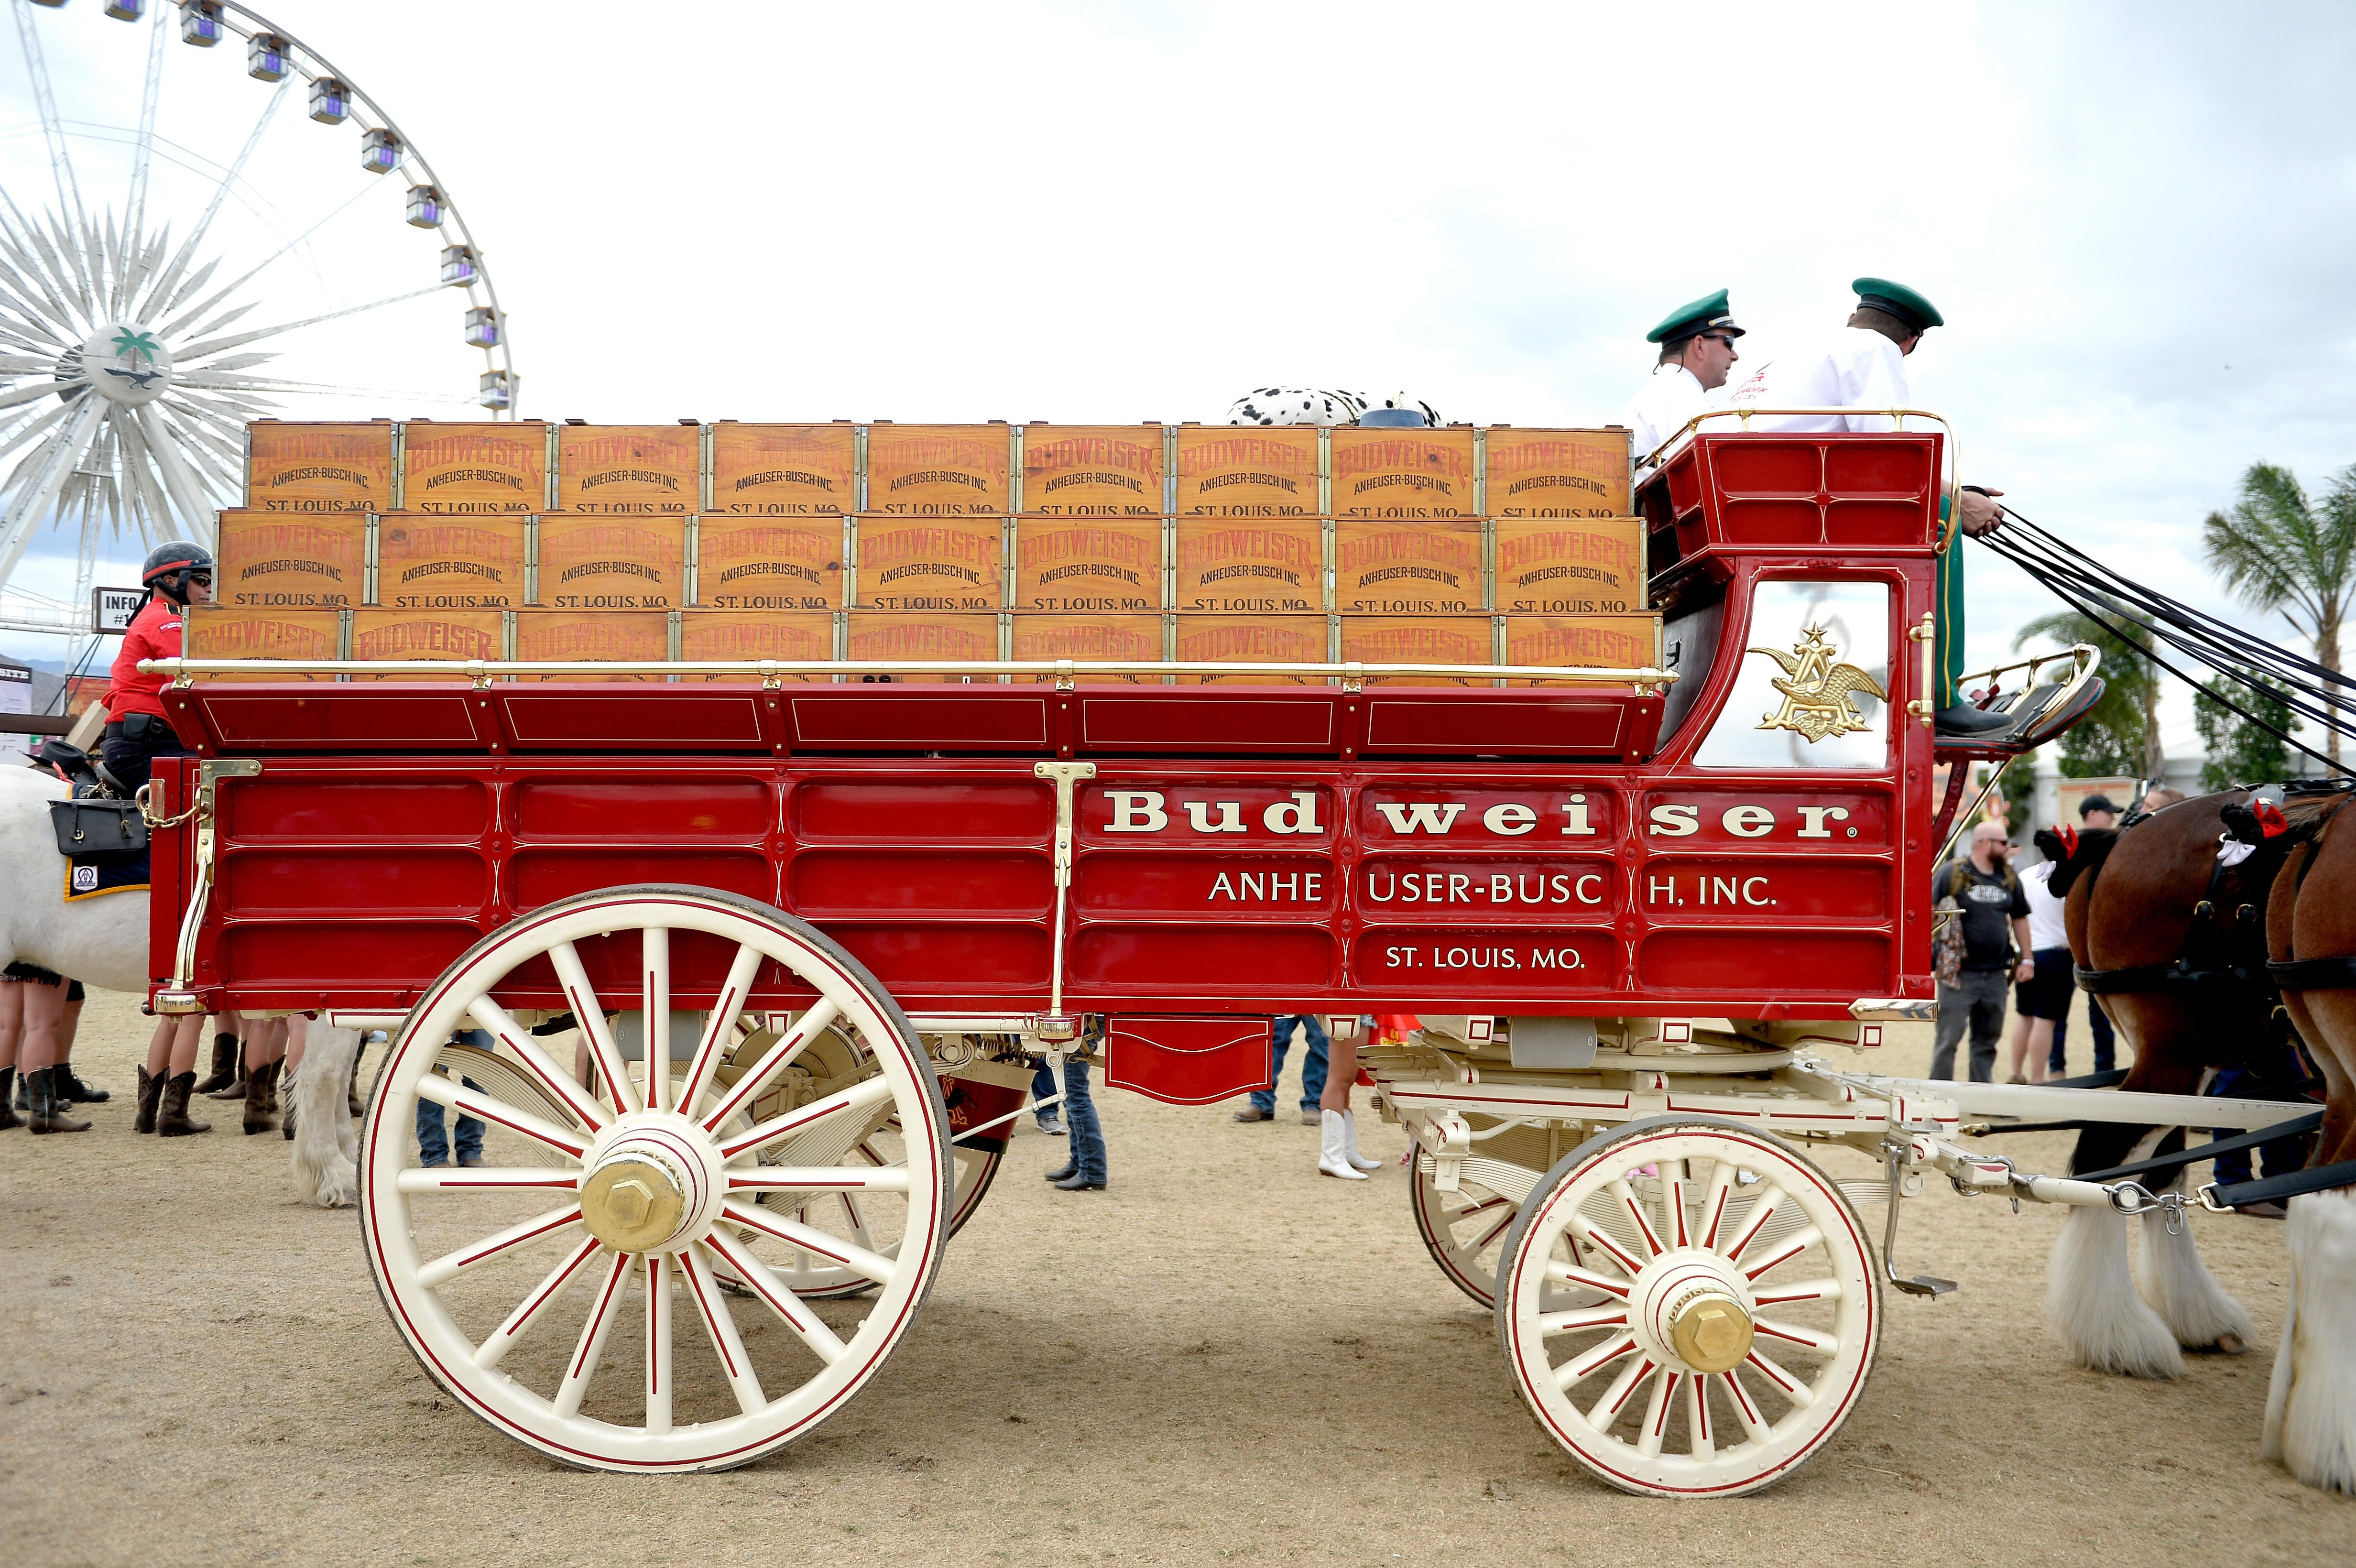 Budweiser wagon and Clydesdale